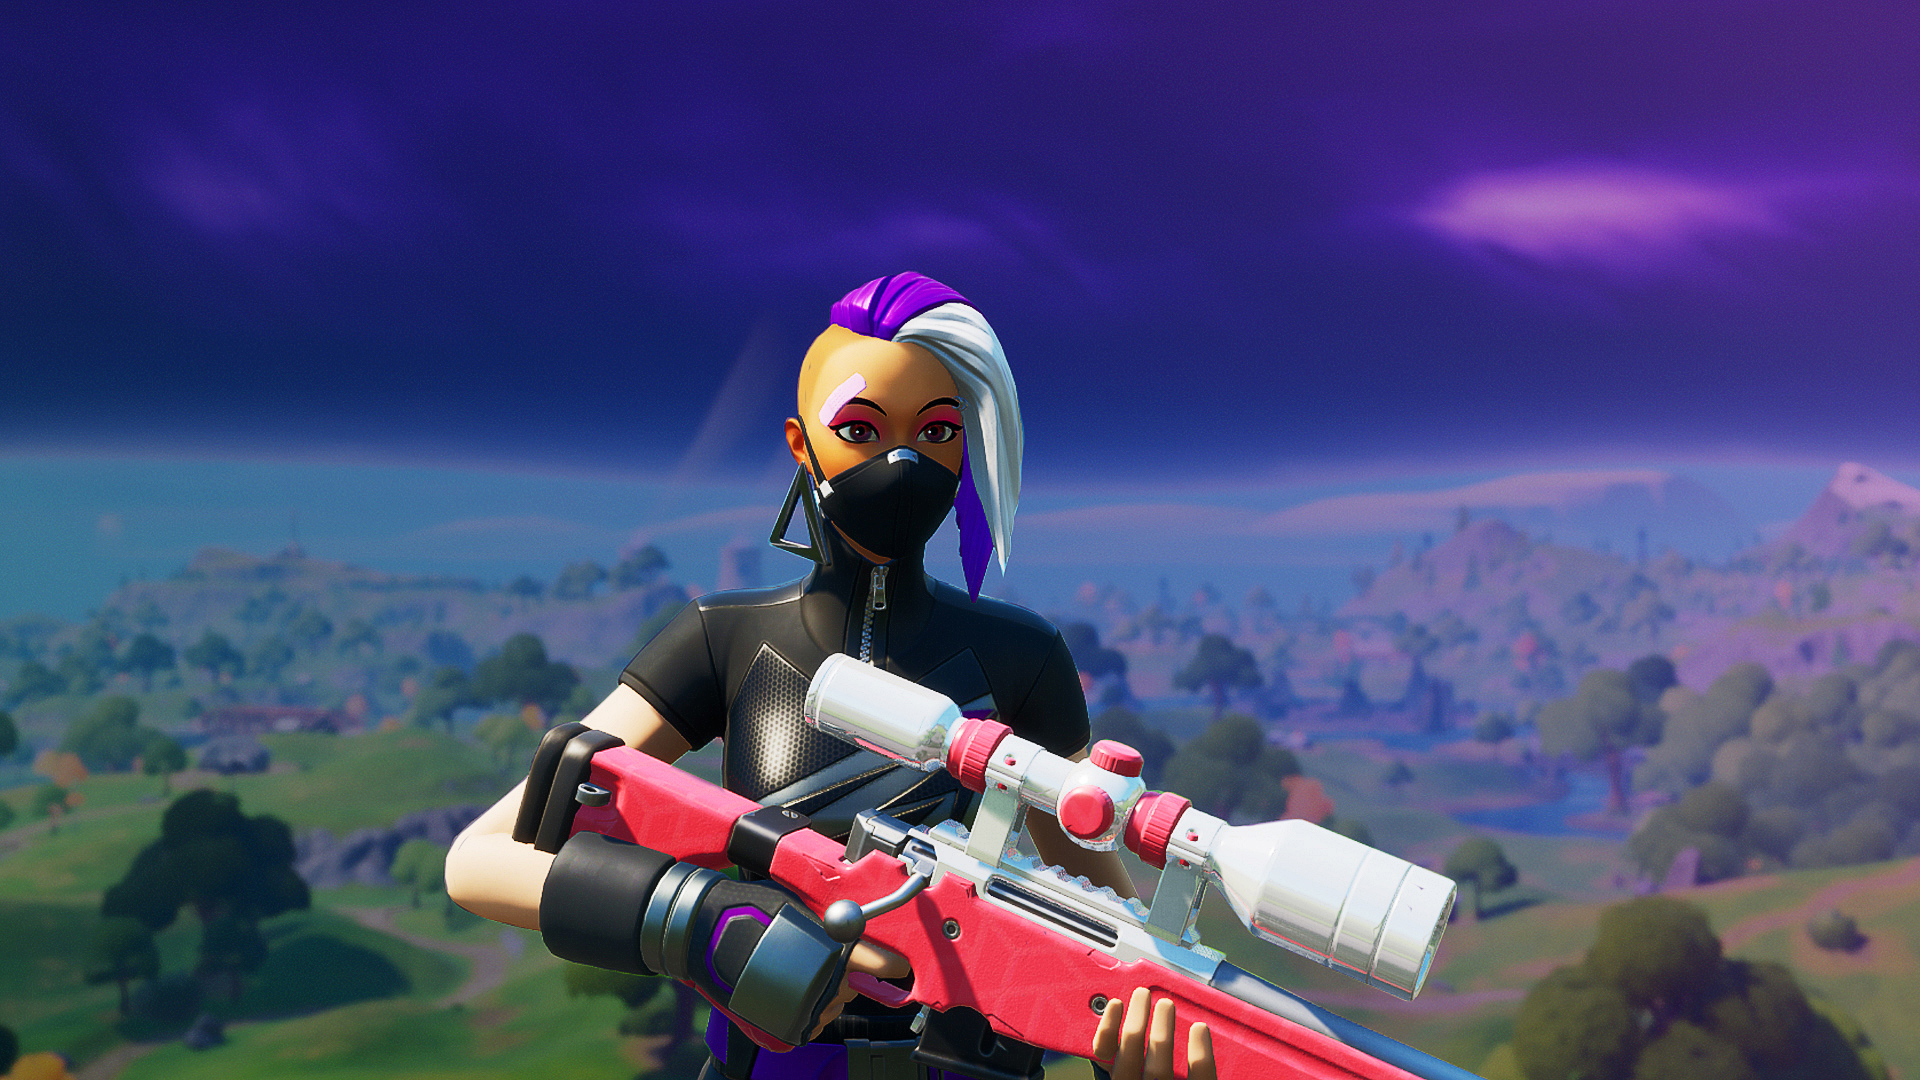 a female character from Fortnite holding a pink sniper rifle